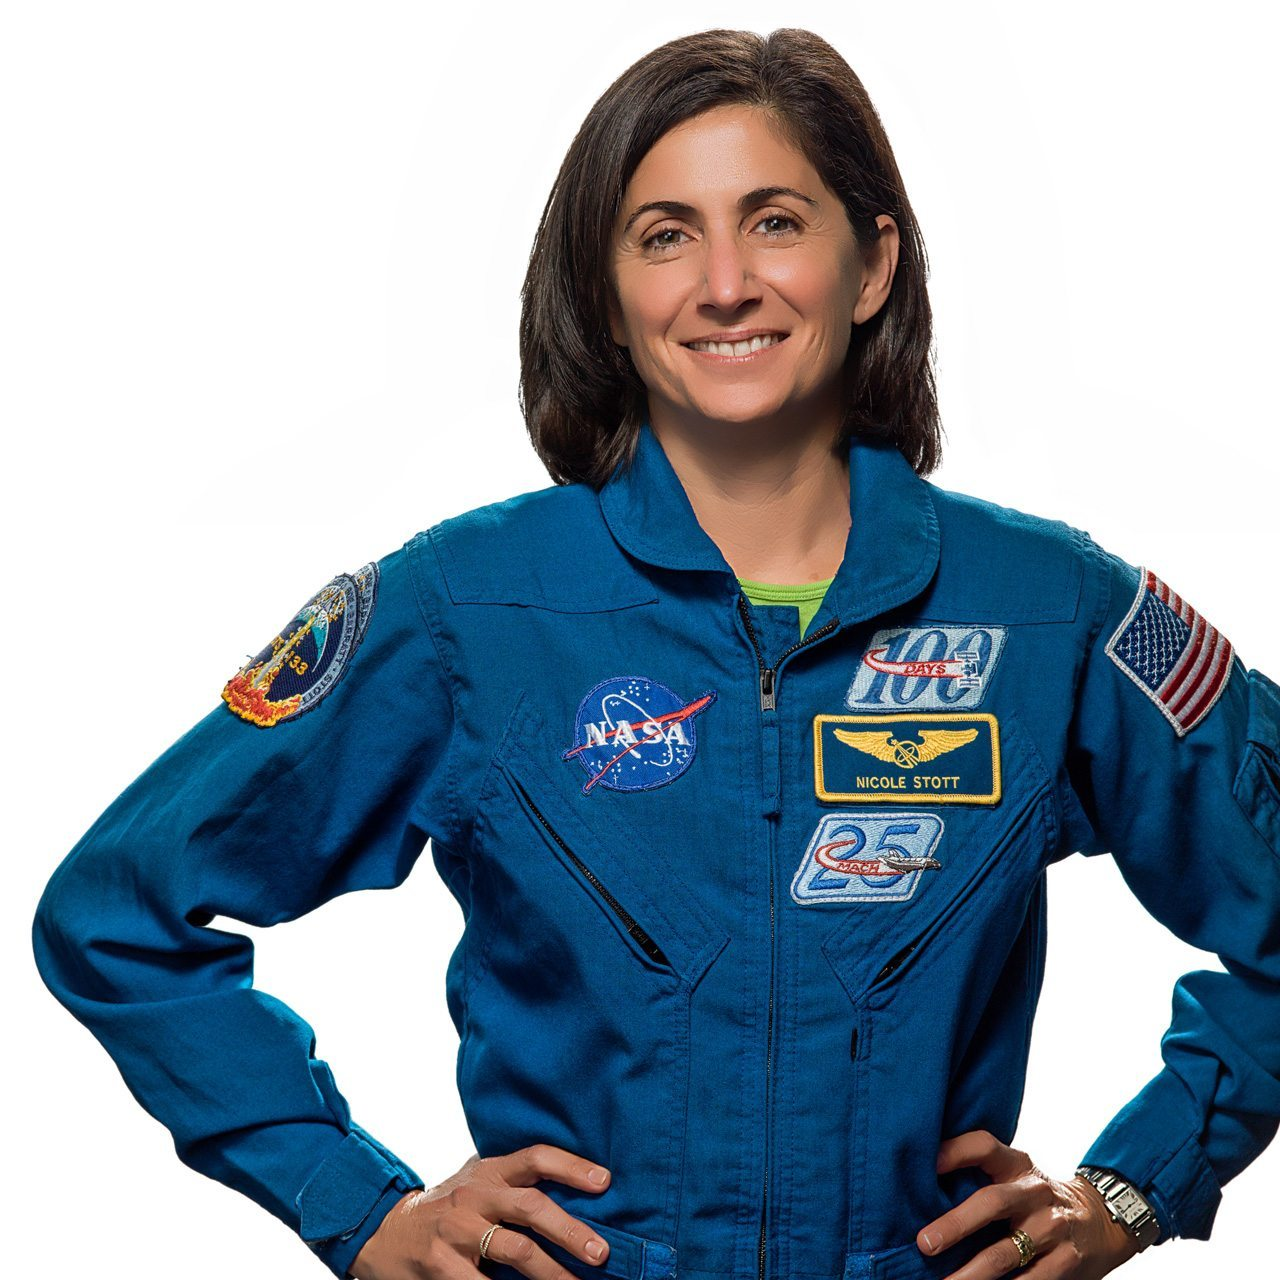 Ms Nicole Stott, former NASA Astronaut and Flight Simulation Engineer, 2 space missions with a 7-hour long space walk, first astronaut to paint in space and Special Advisor to CASE.